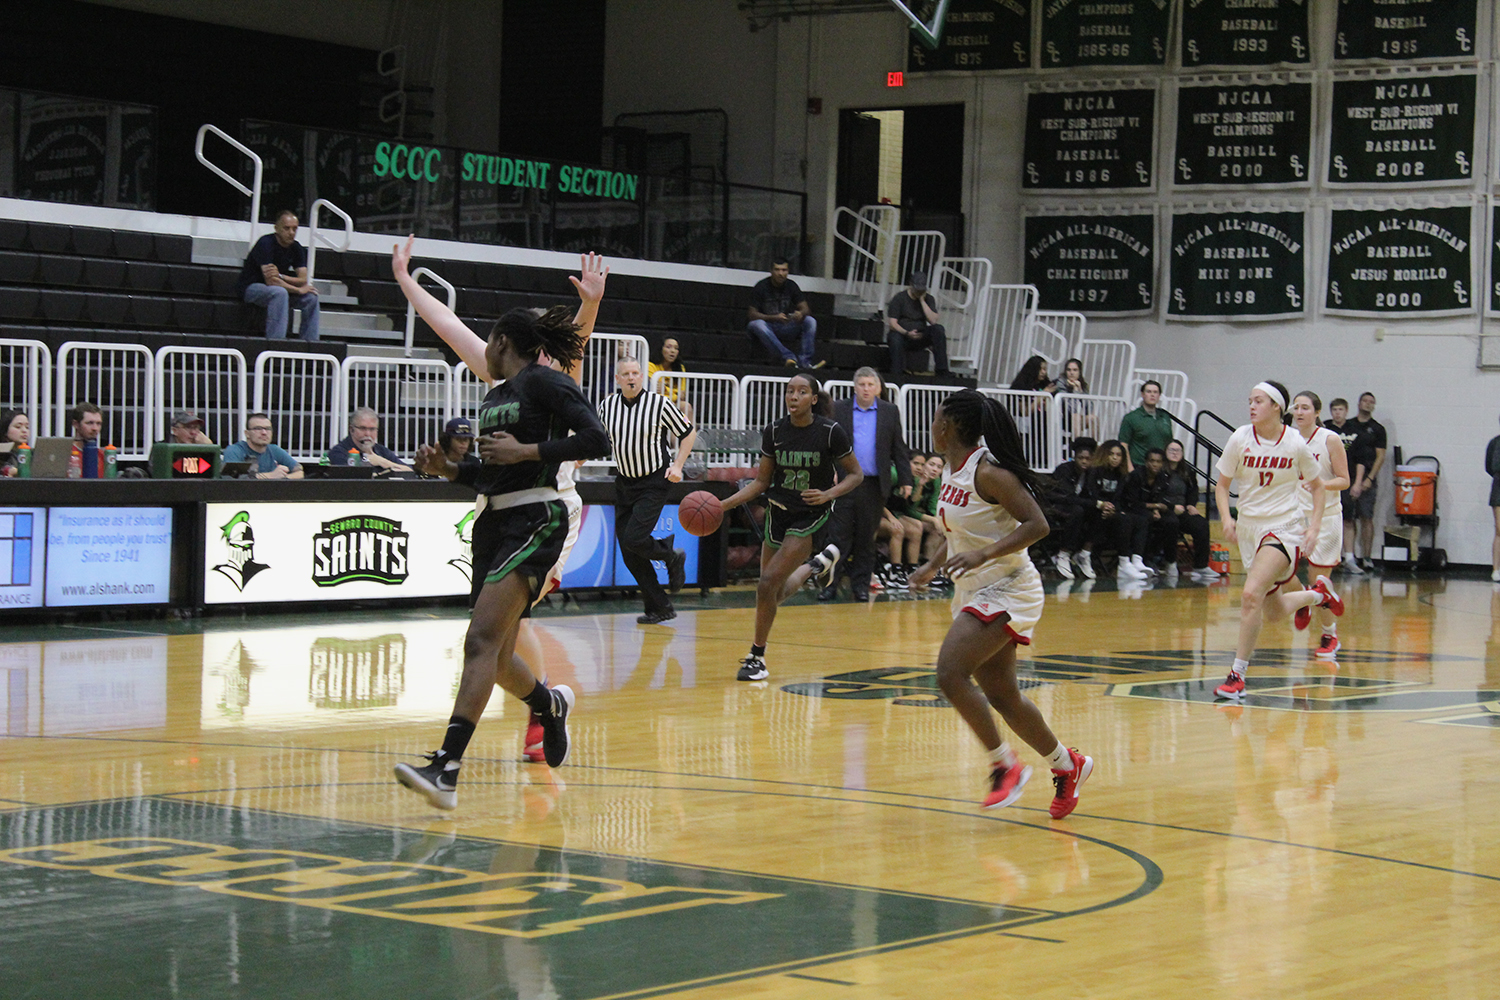 The No. 5 Seward Saints suffer their first loss against Midland College in the opening round of the WNIT on Thursday at Midland. They are 4-1 overall in game play.